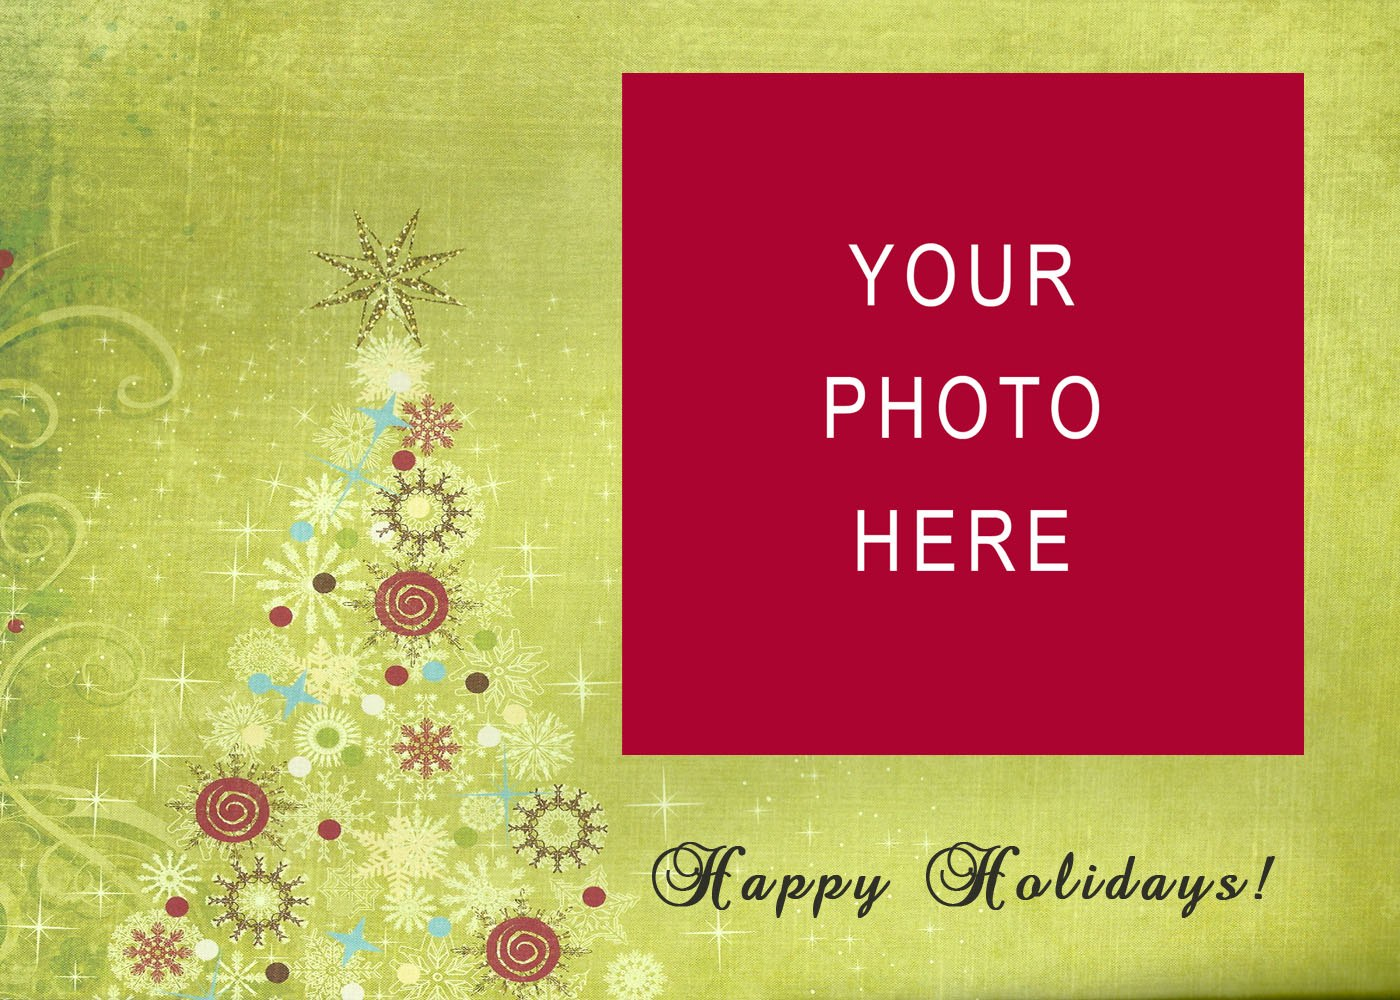 Oh Joy Photography Free Holiday Card Templates Columbus Ohio With Holiday Card Templates For Photographers